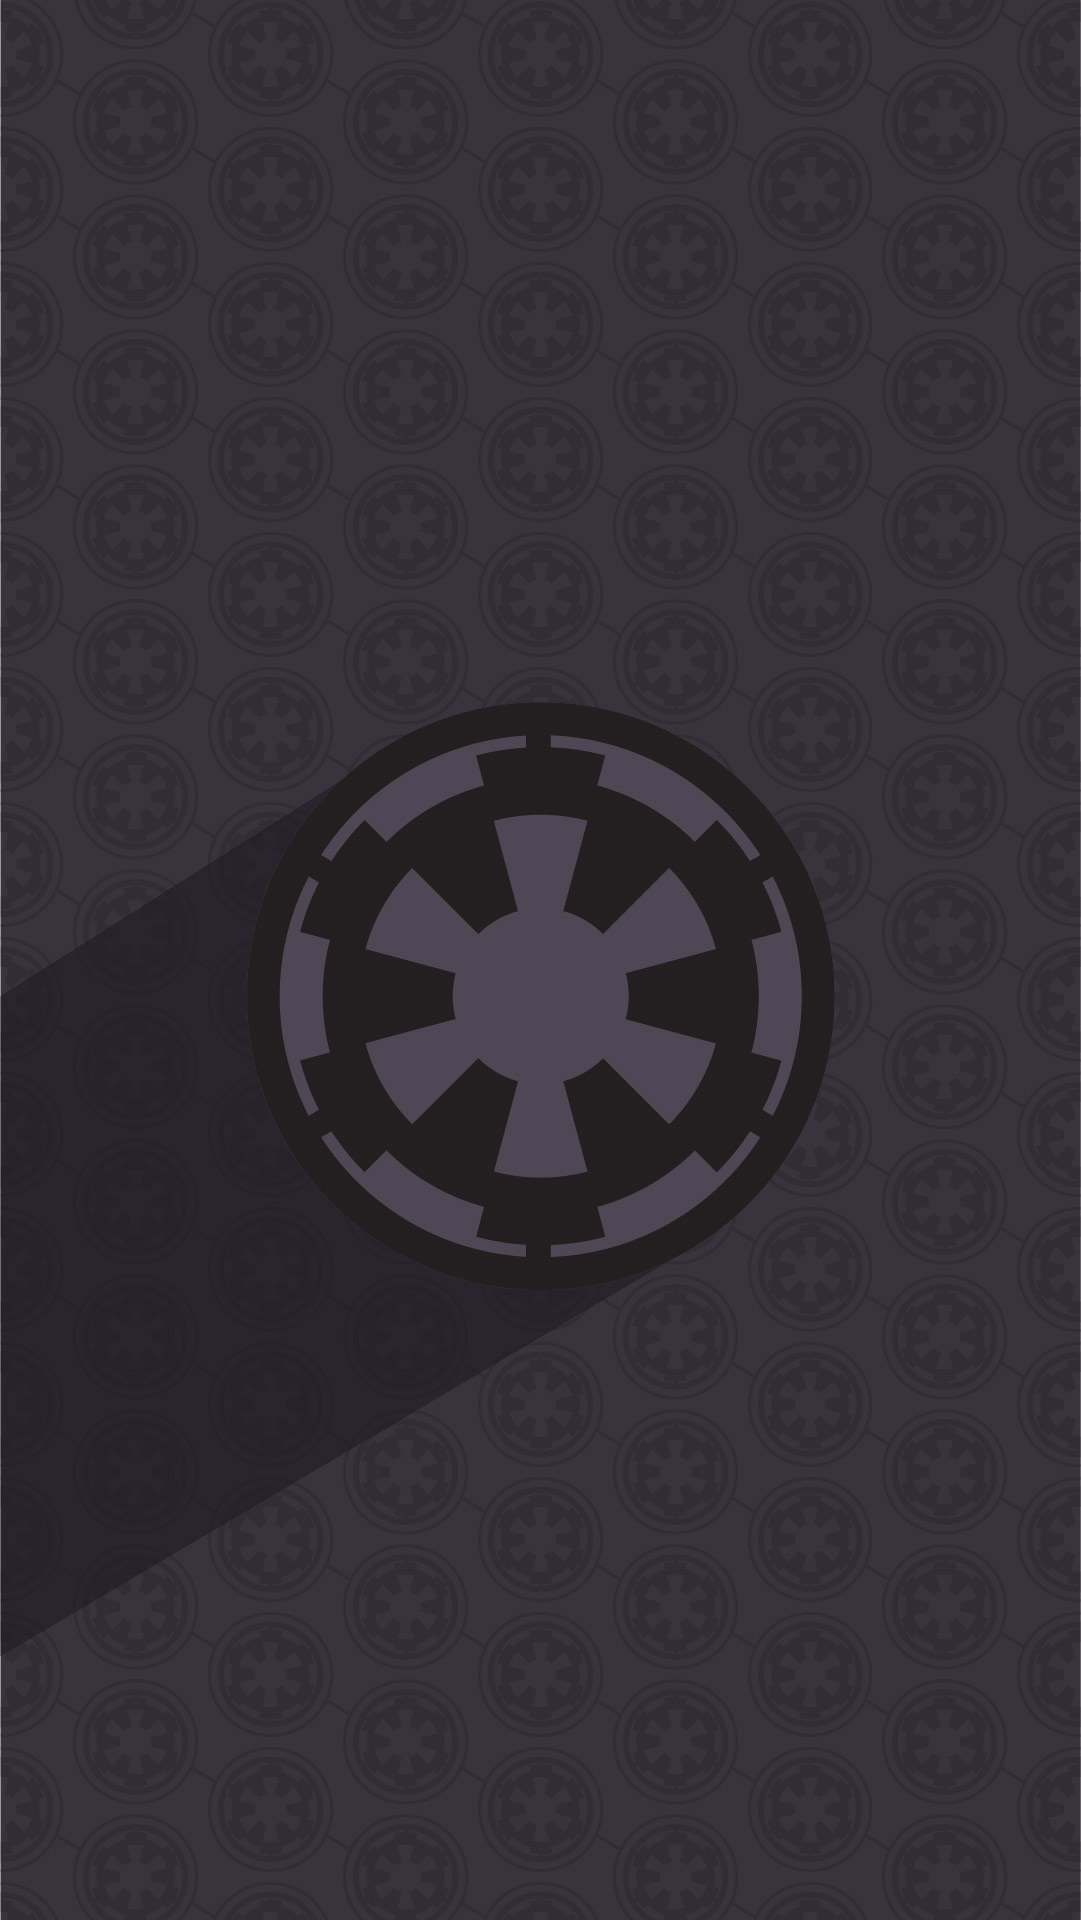 May The Wallpapers Be With You